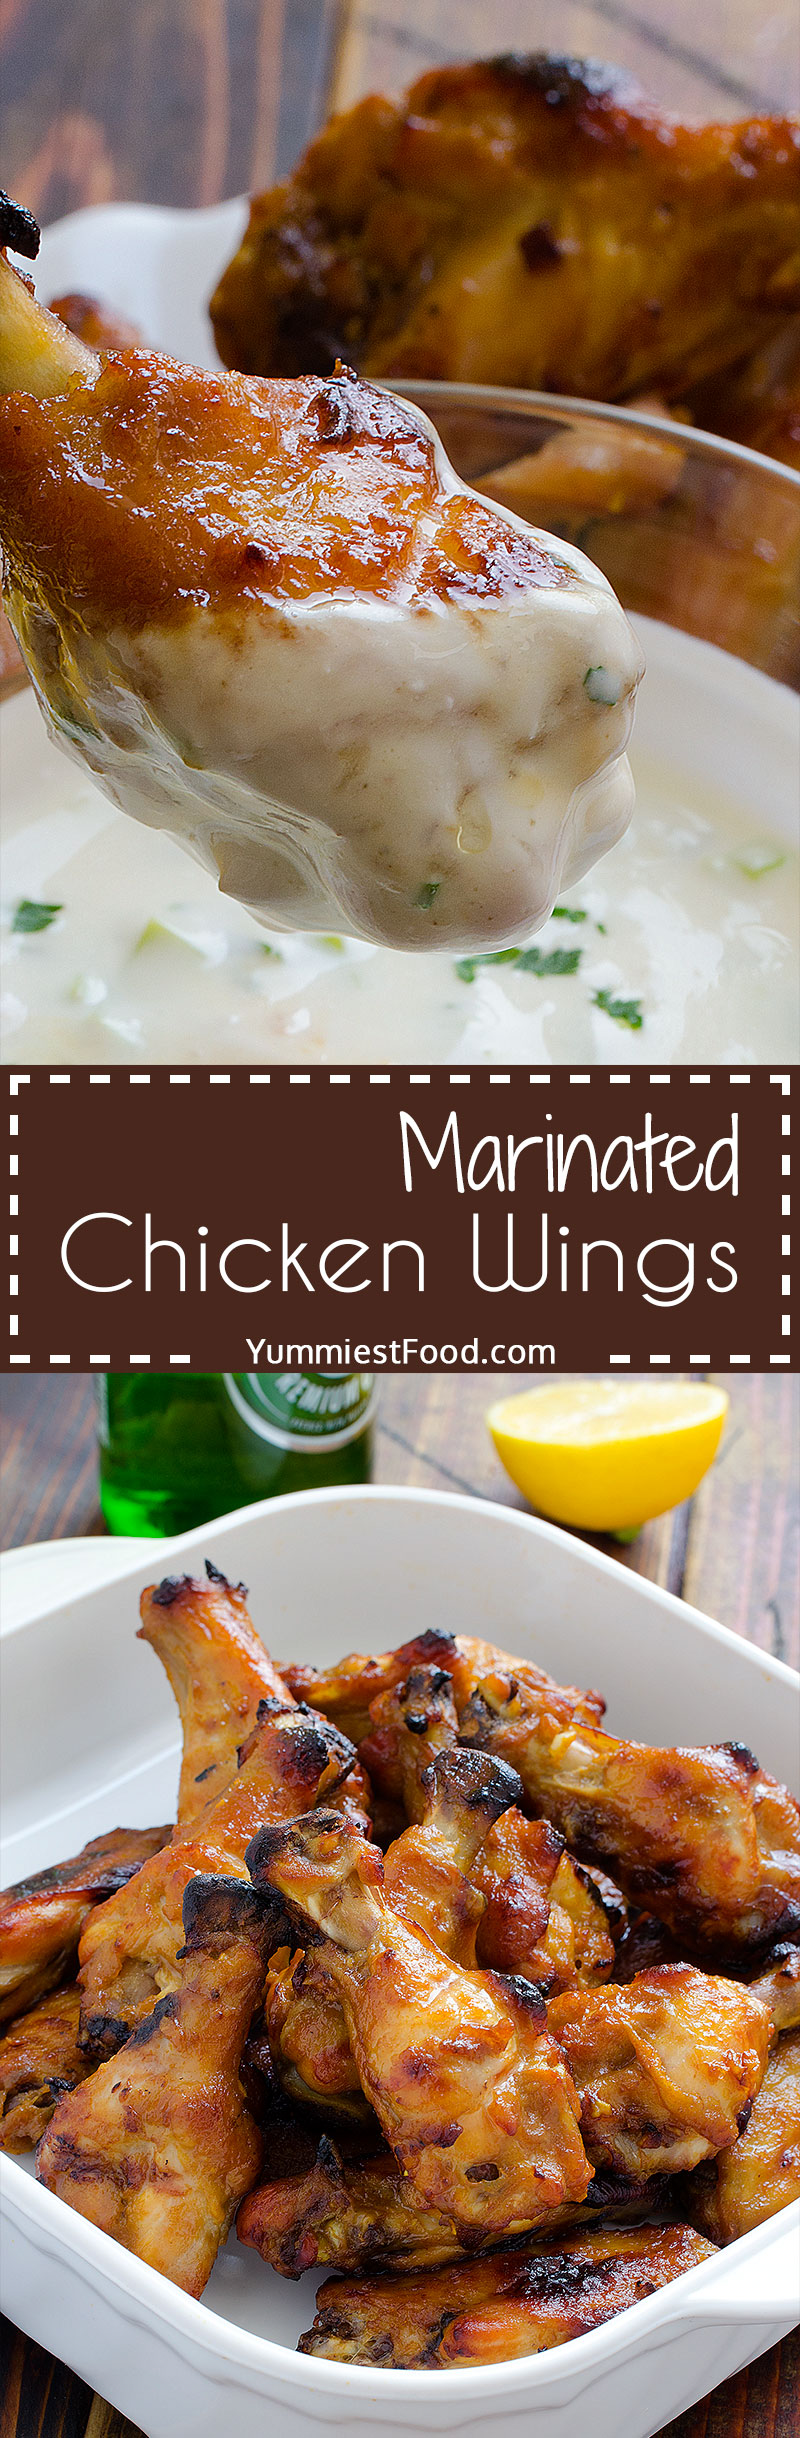 Marinated Chicken Wings - delicious and tasty dish which give the other dimension of preparing chicken wings